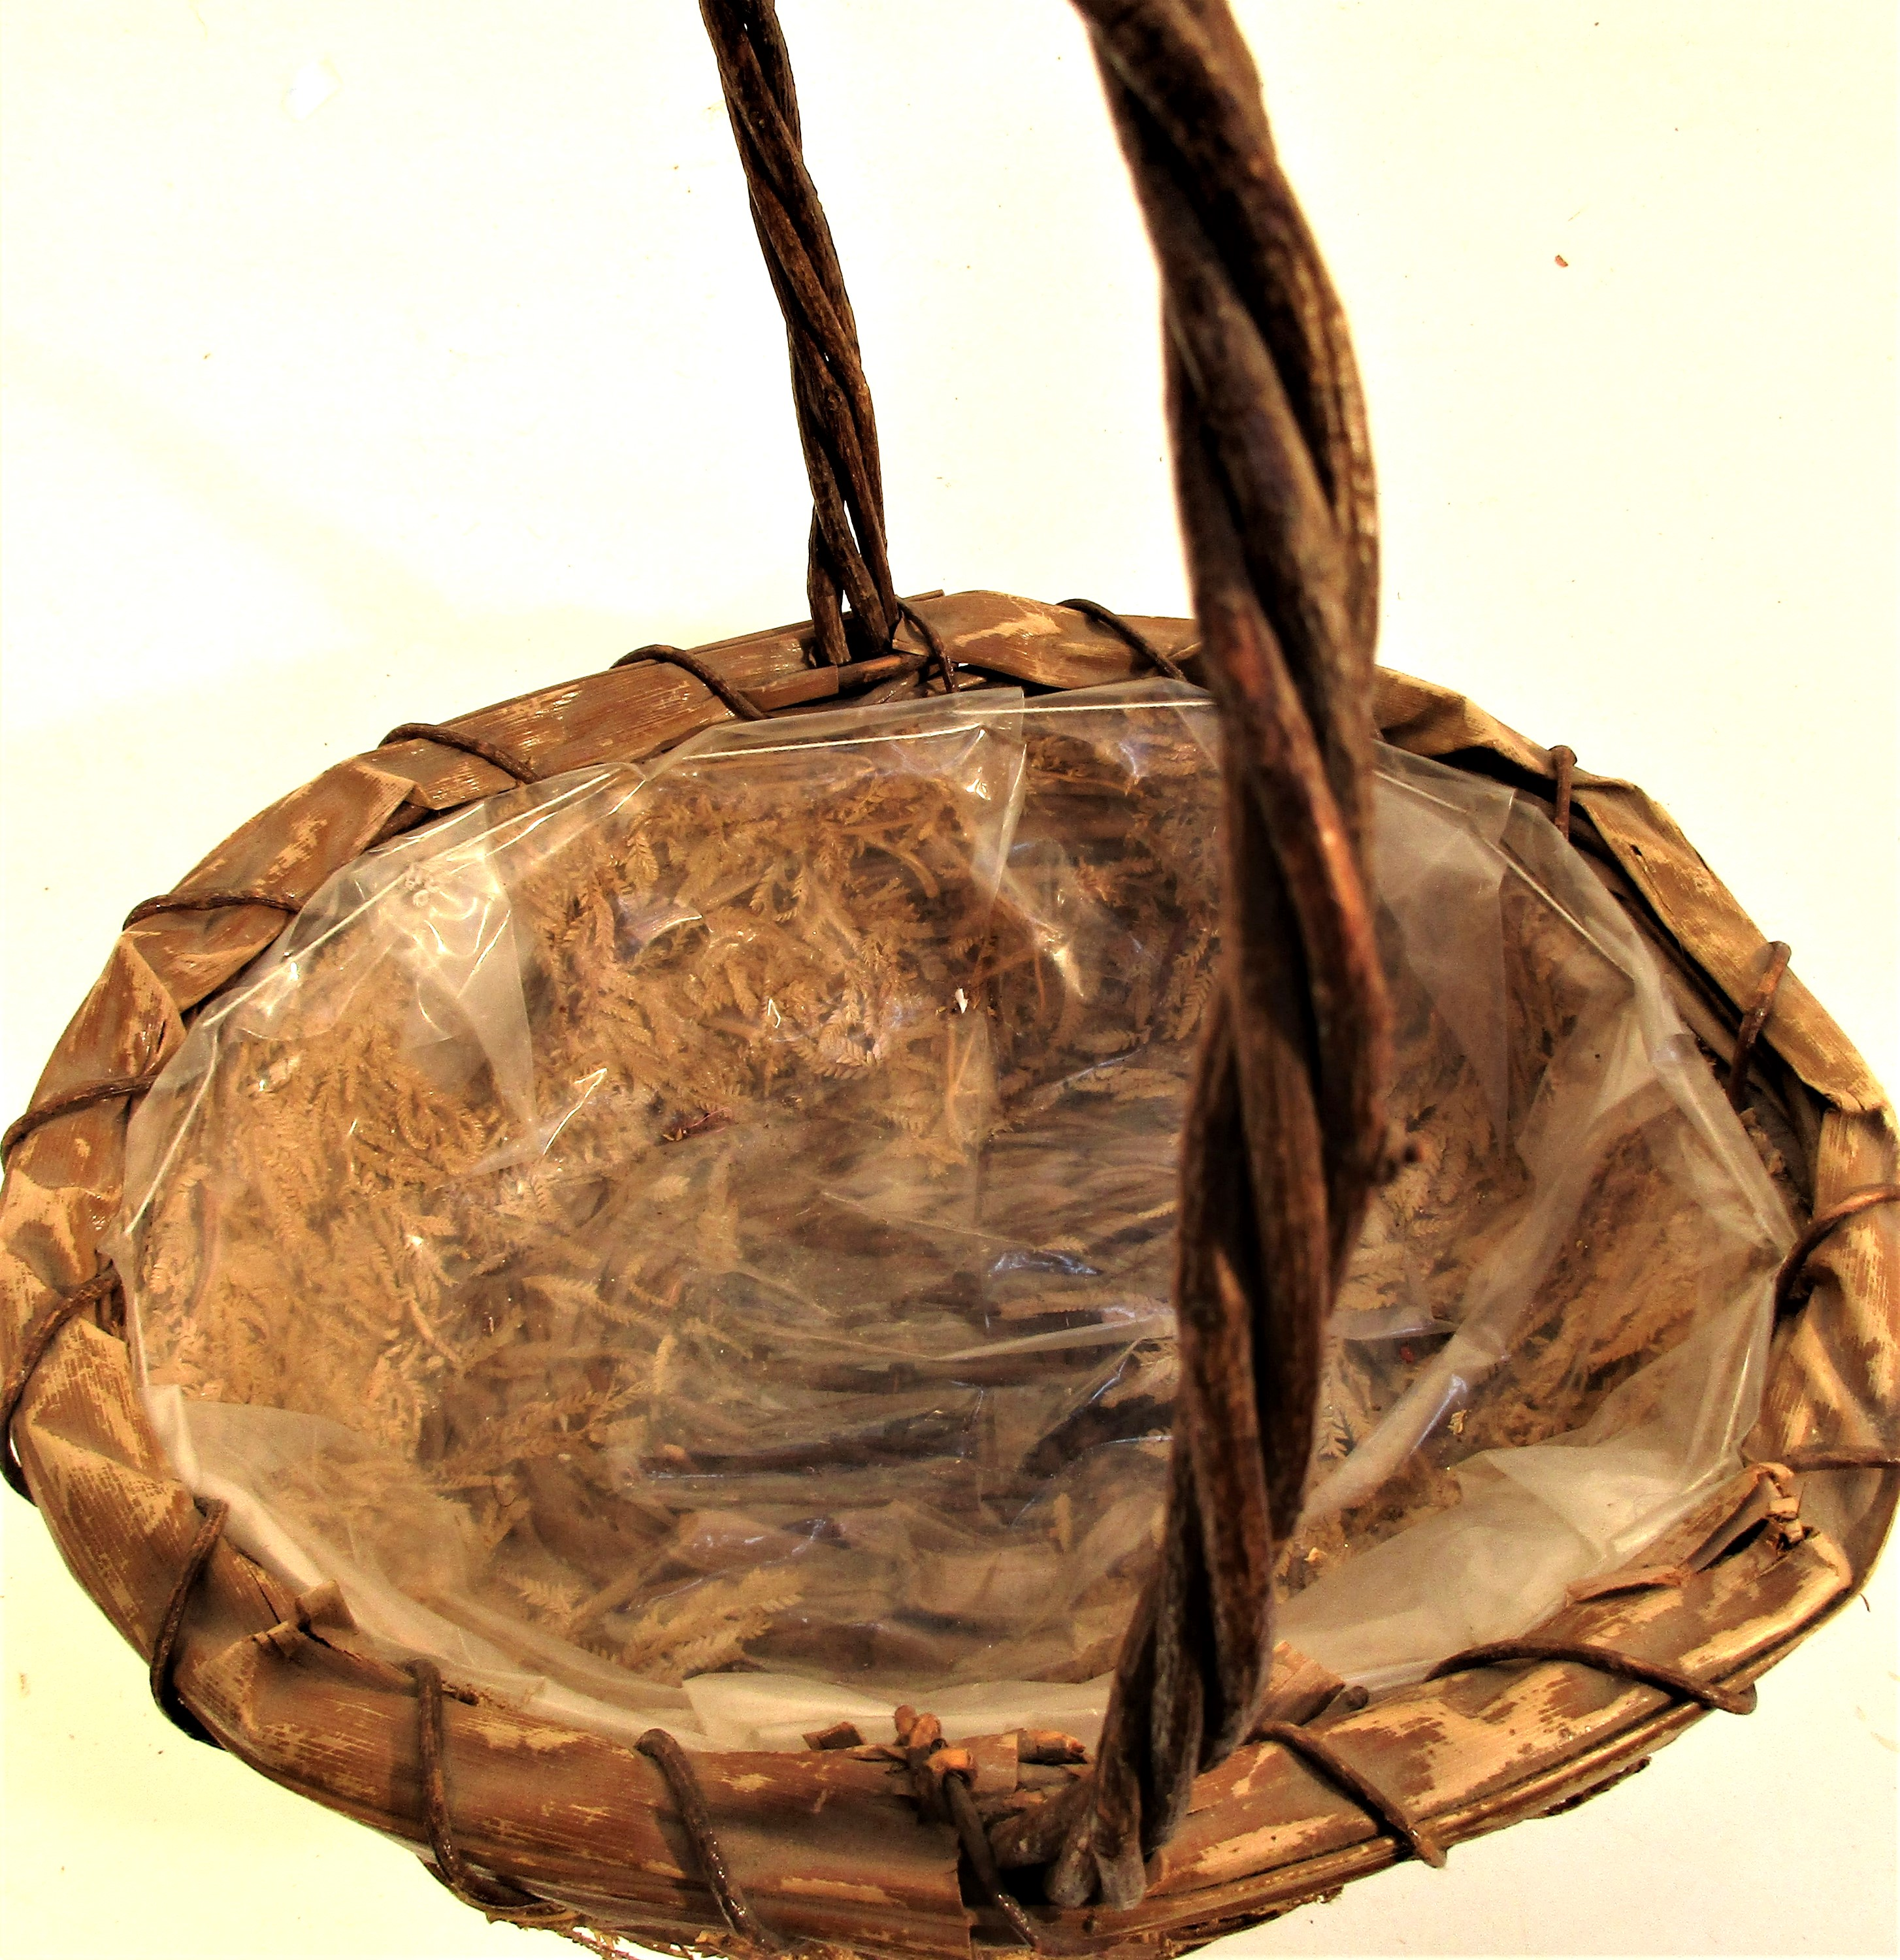 Basket with long handle, fern decoration and plastic lining. 25 x 25cm. - Image 2 of 2